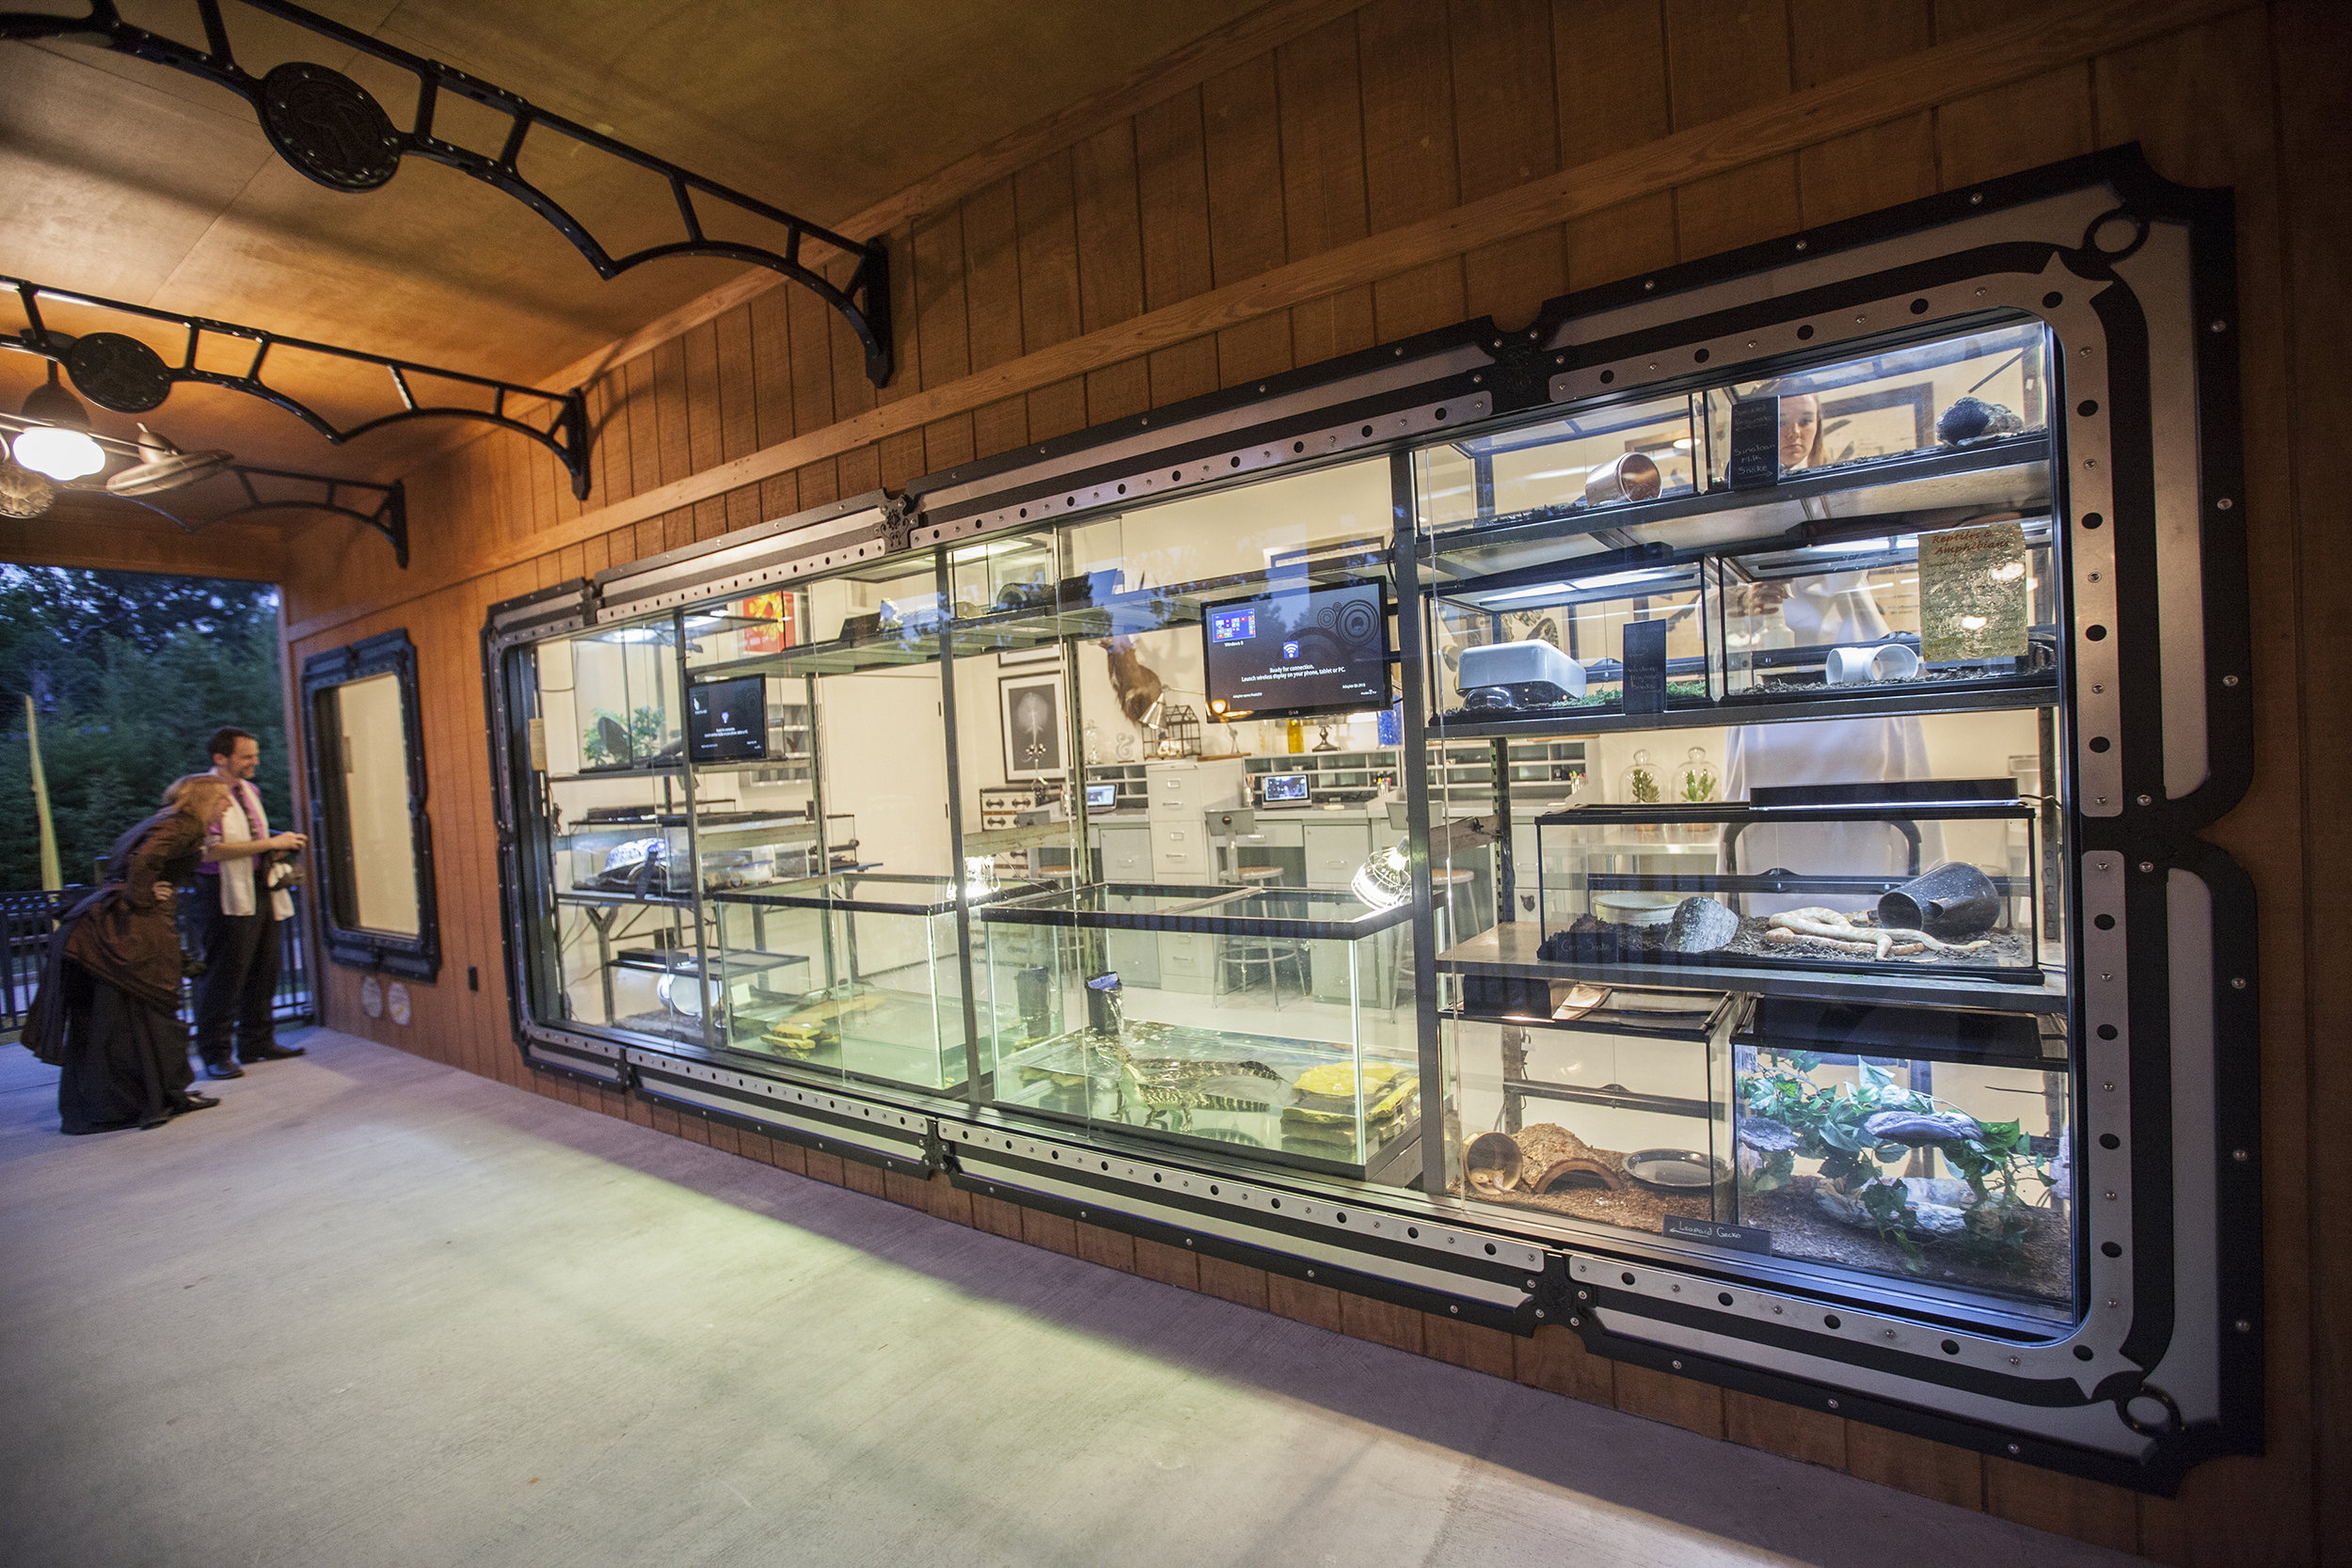 This large window is made to view the reptile exhibit. In the evening it glows wonderfully fromthe inside.